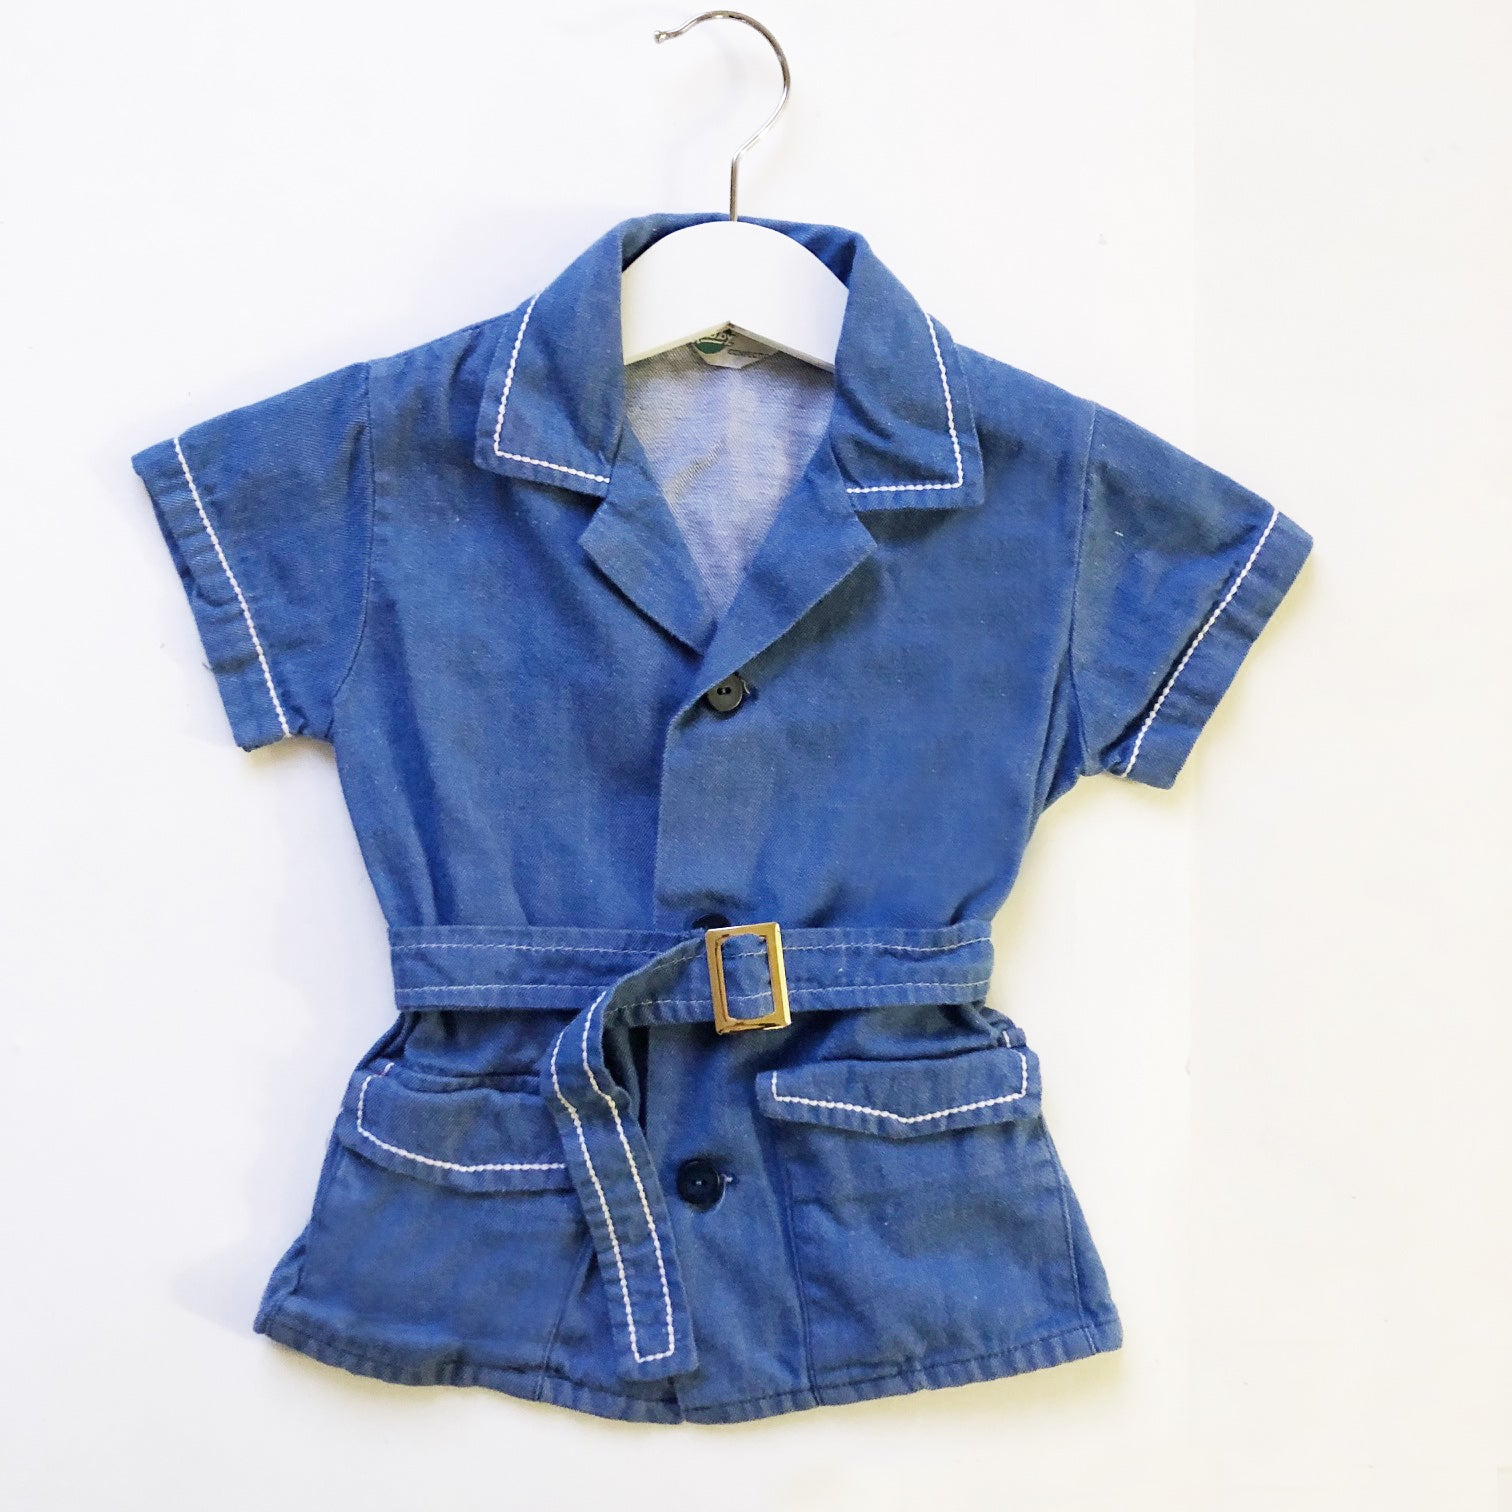 Chambray Denim Belted Shirt size 2-3